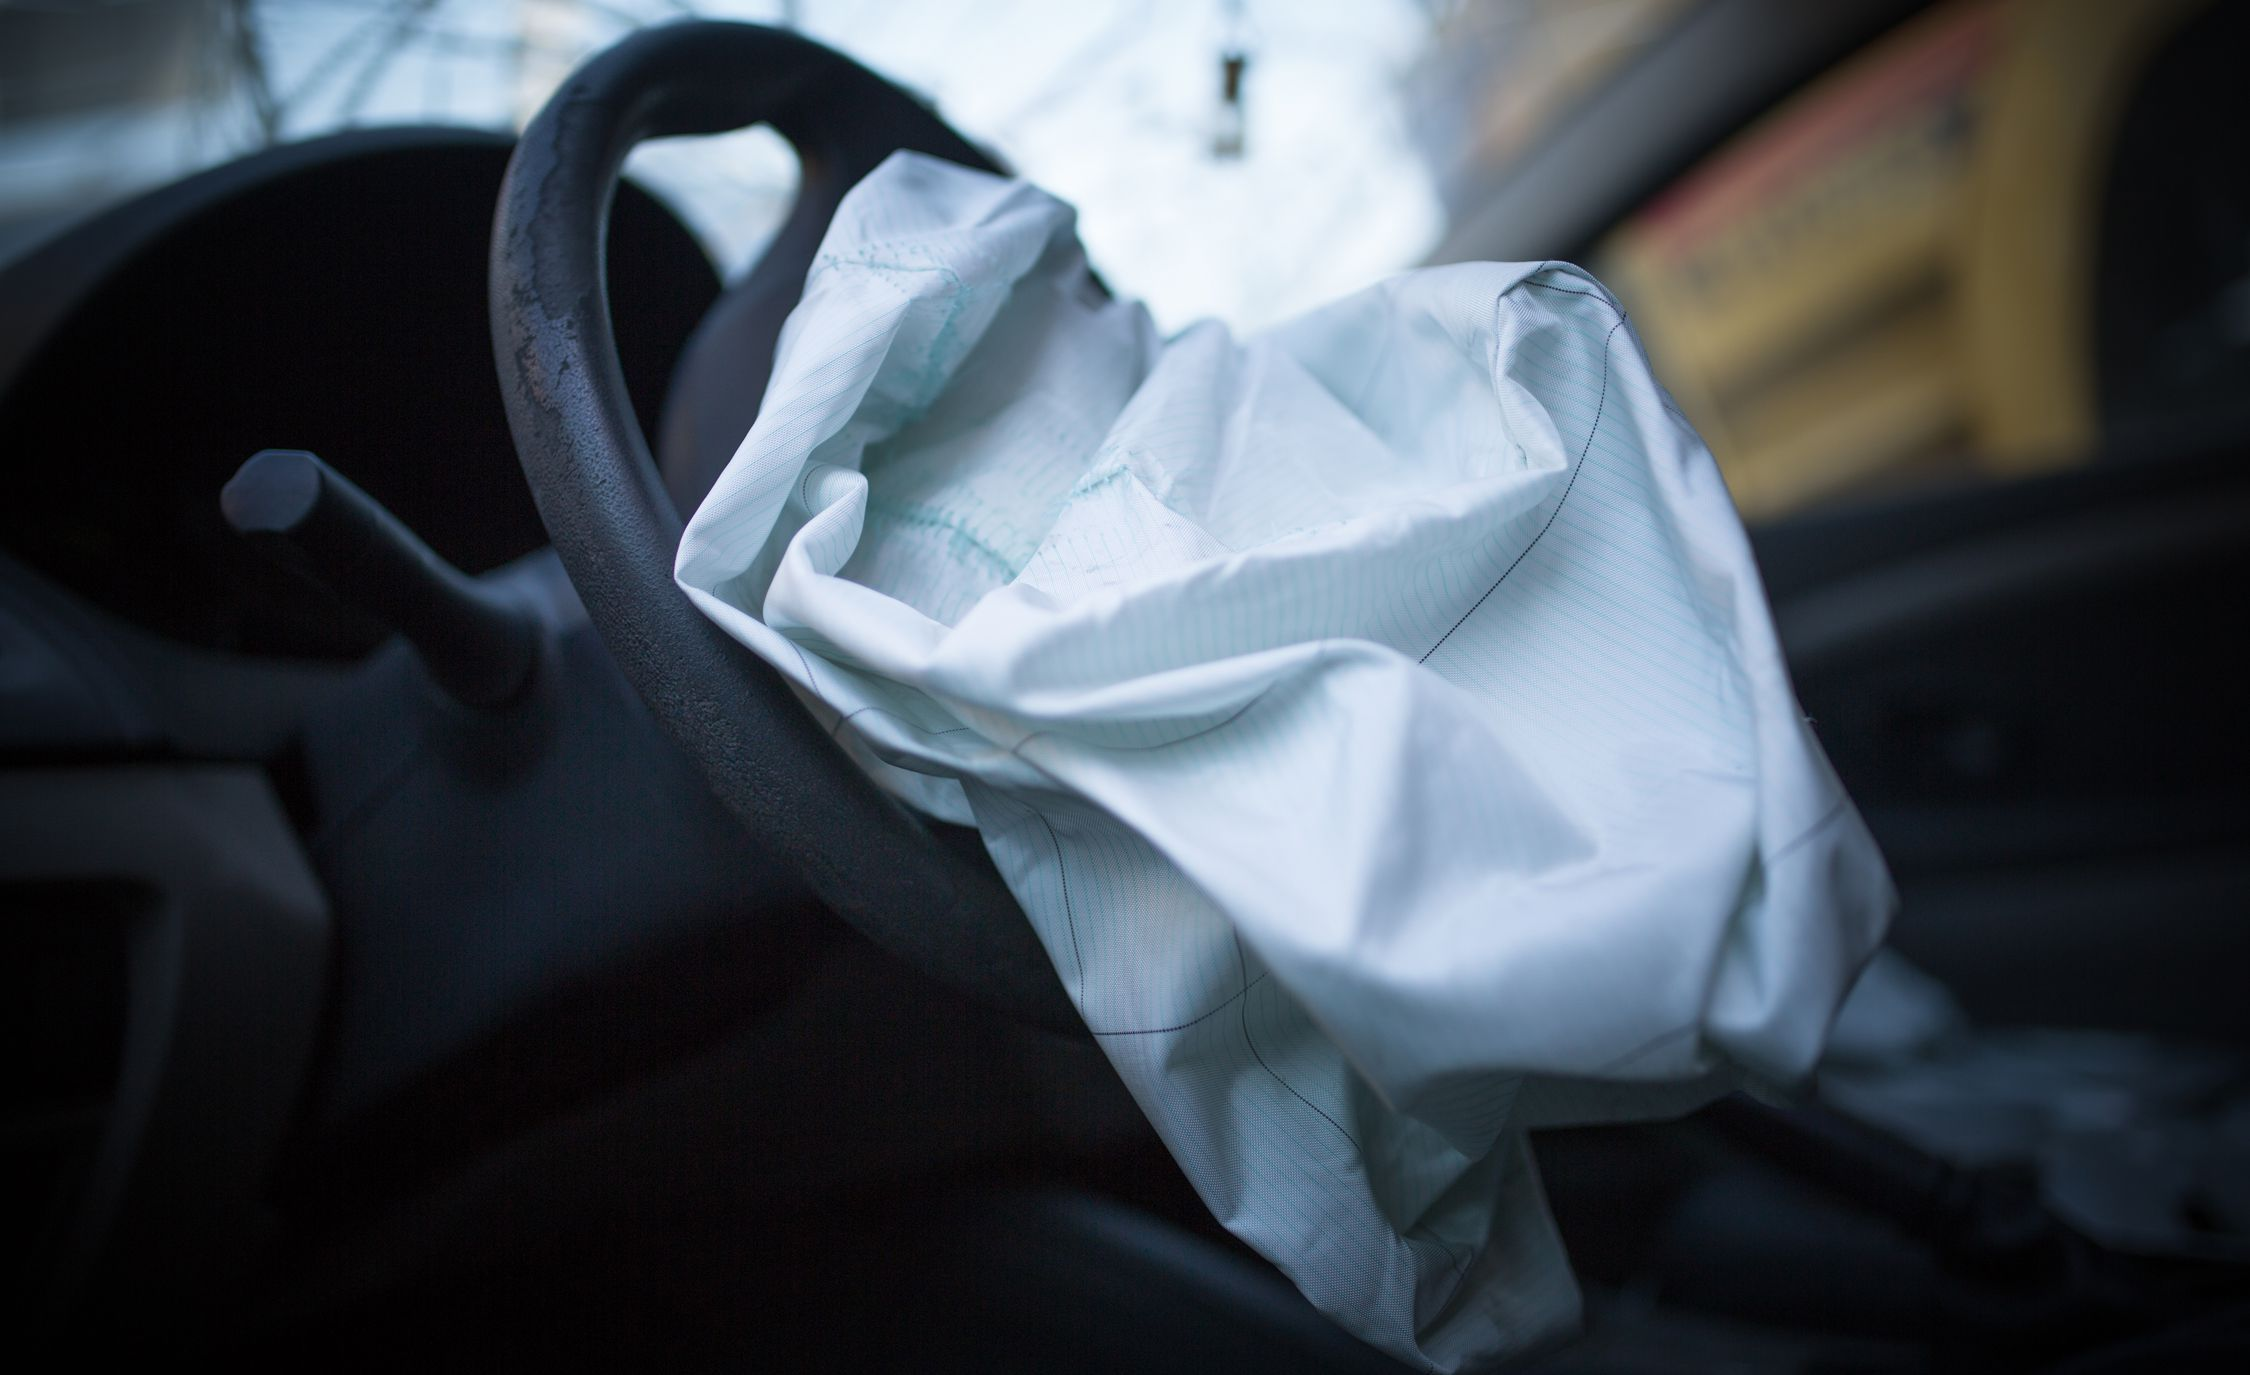 The Automotive World And Beyond Is Buzzing About The Massive Airbag Recall Covering Many Millions Of Vehicles In The United States From Nearly Two Dozen